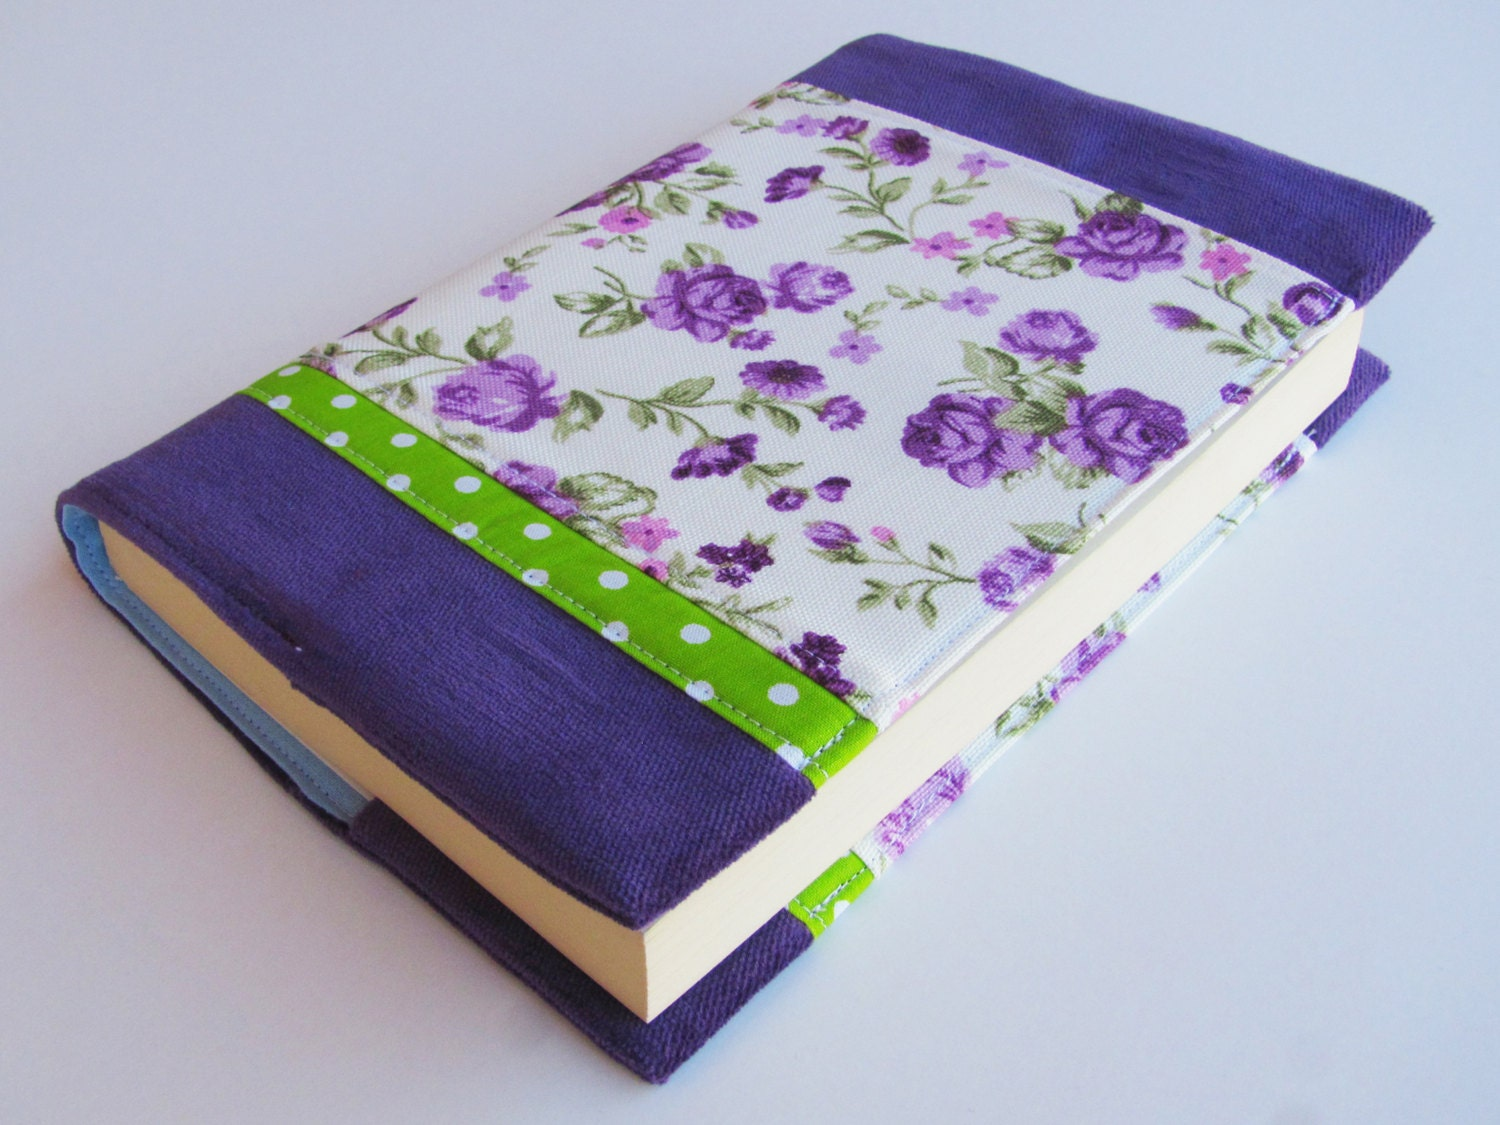 Paperback Book Cover Material : Floral fabric book cover paperback for mass market